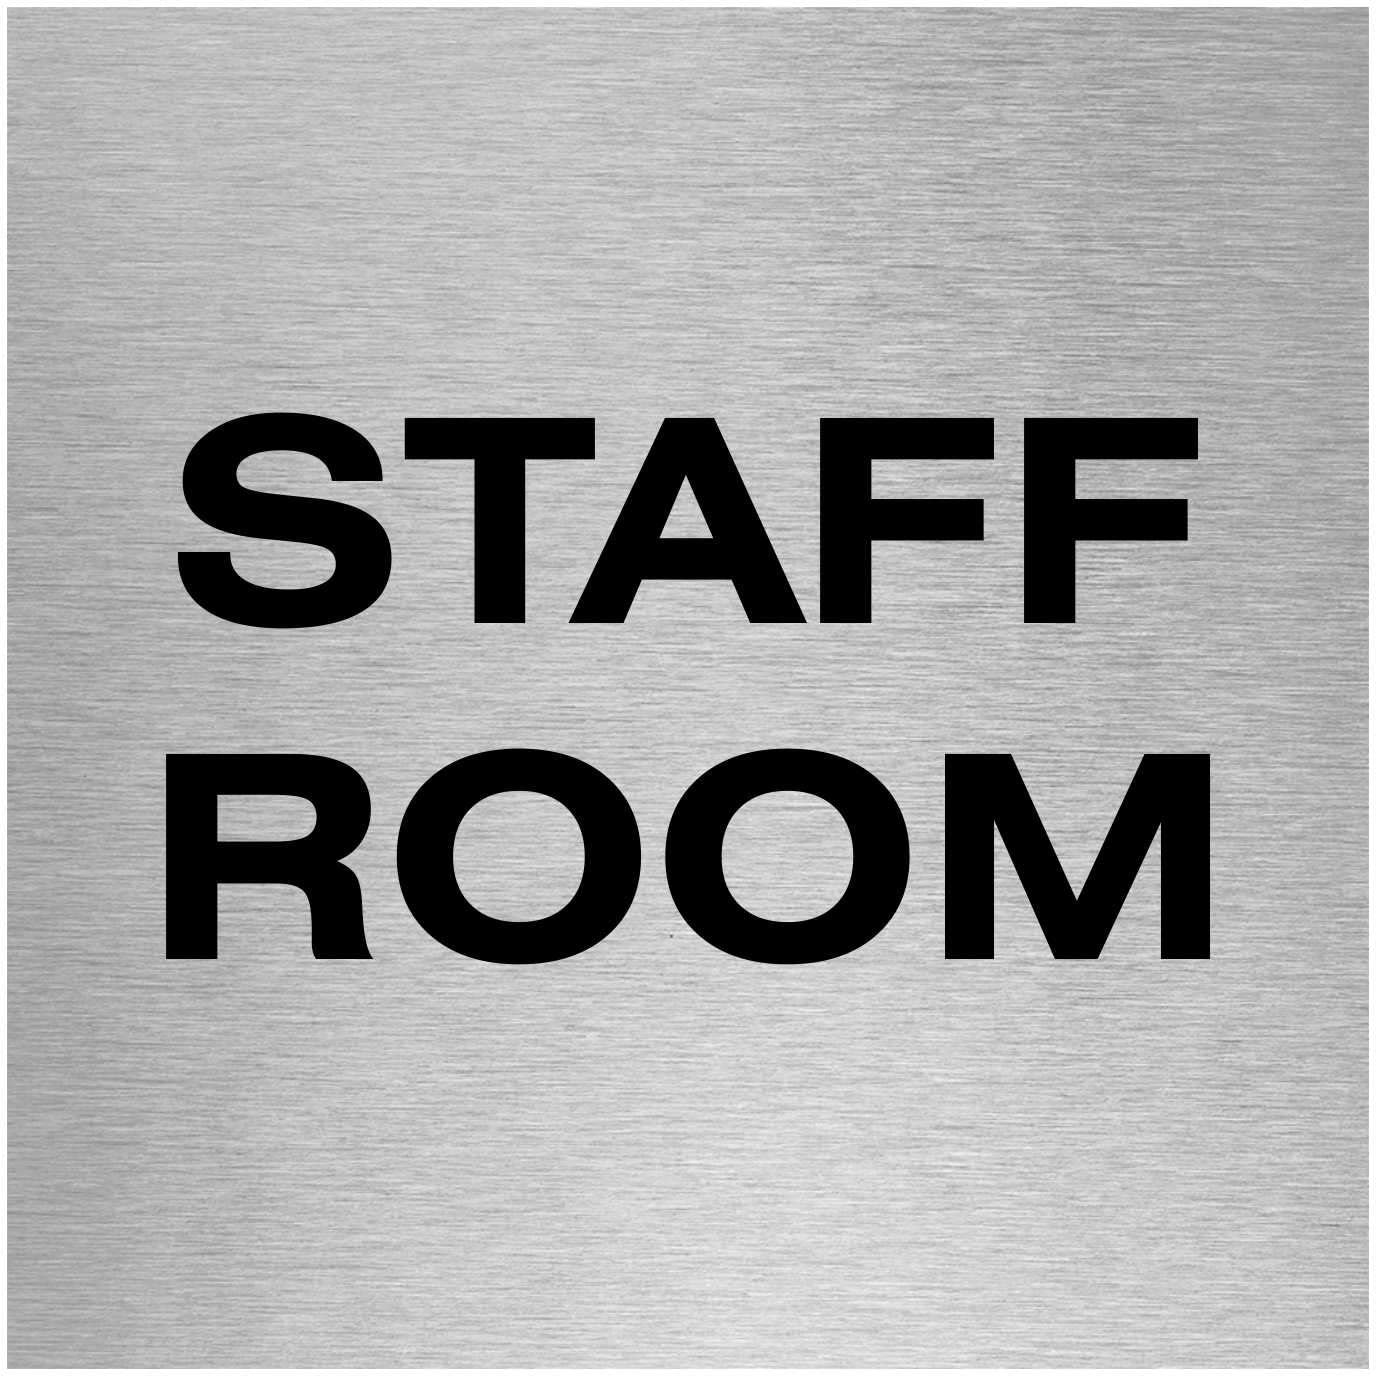 Made in the UK 100 x 100mm Aluminium Staff Room Sign Self Adhesive Fixing